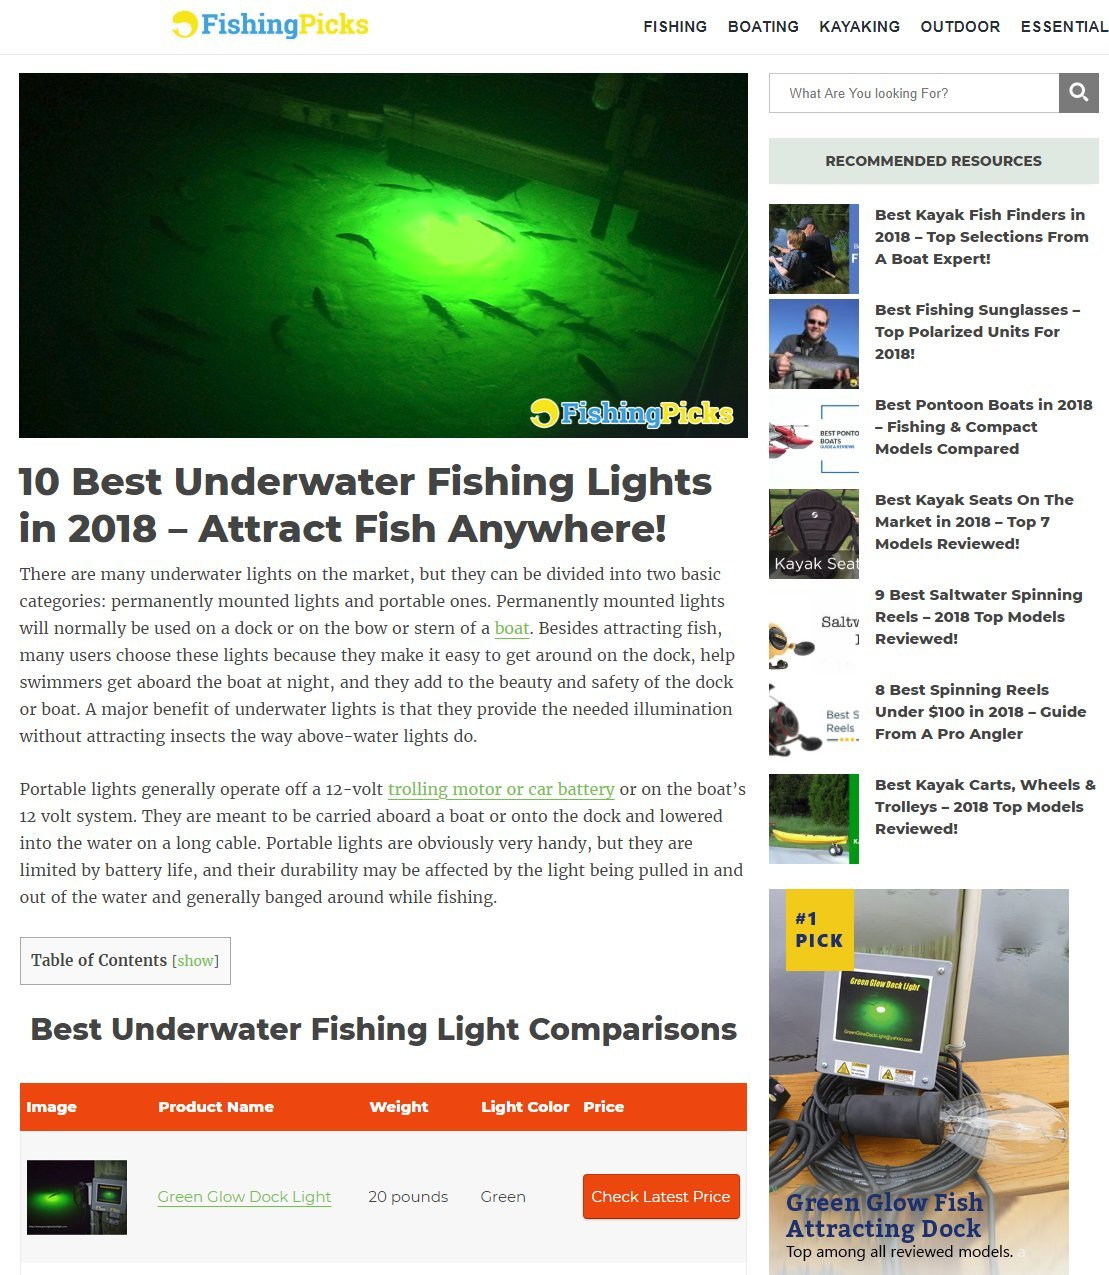 Bright Green Underwater Fishing Lights, Double Lamp Kit with 50' Cords Saltwater or Fresh by Green Glow Dock Light (Image #2)